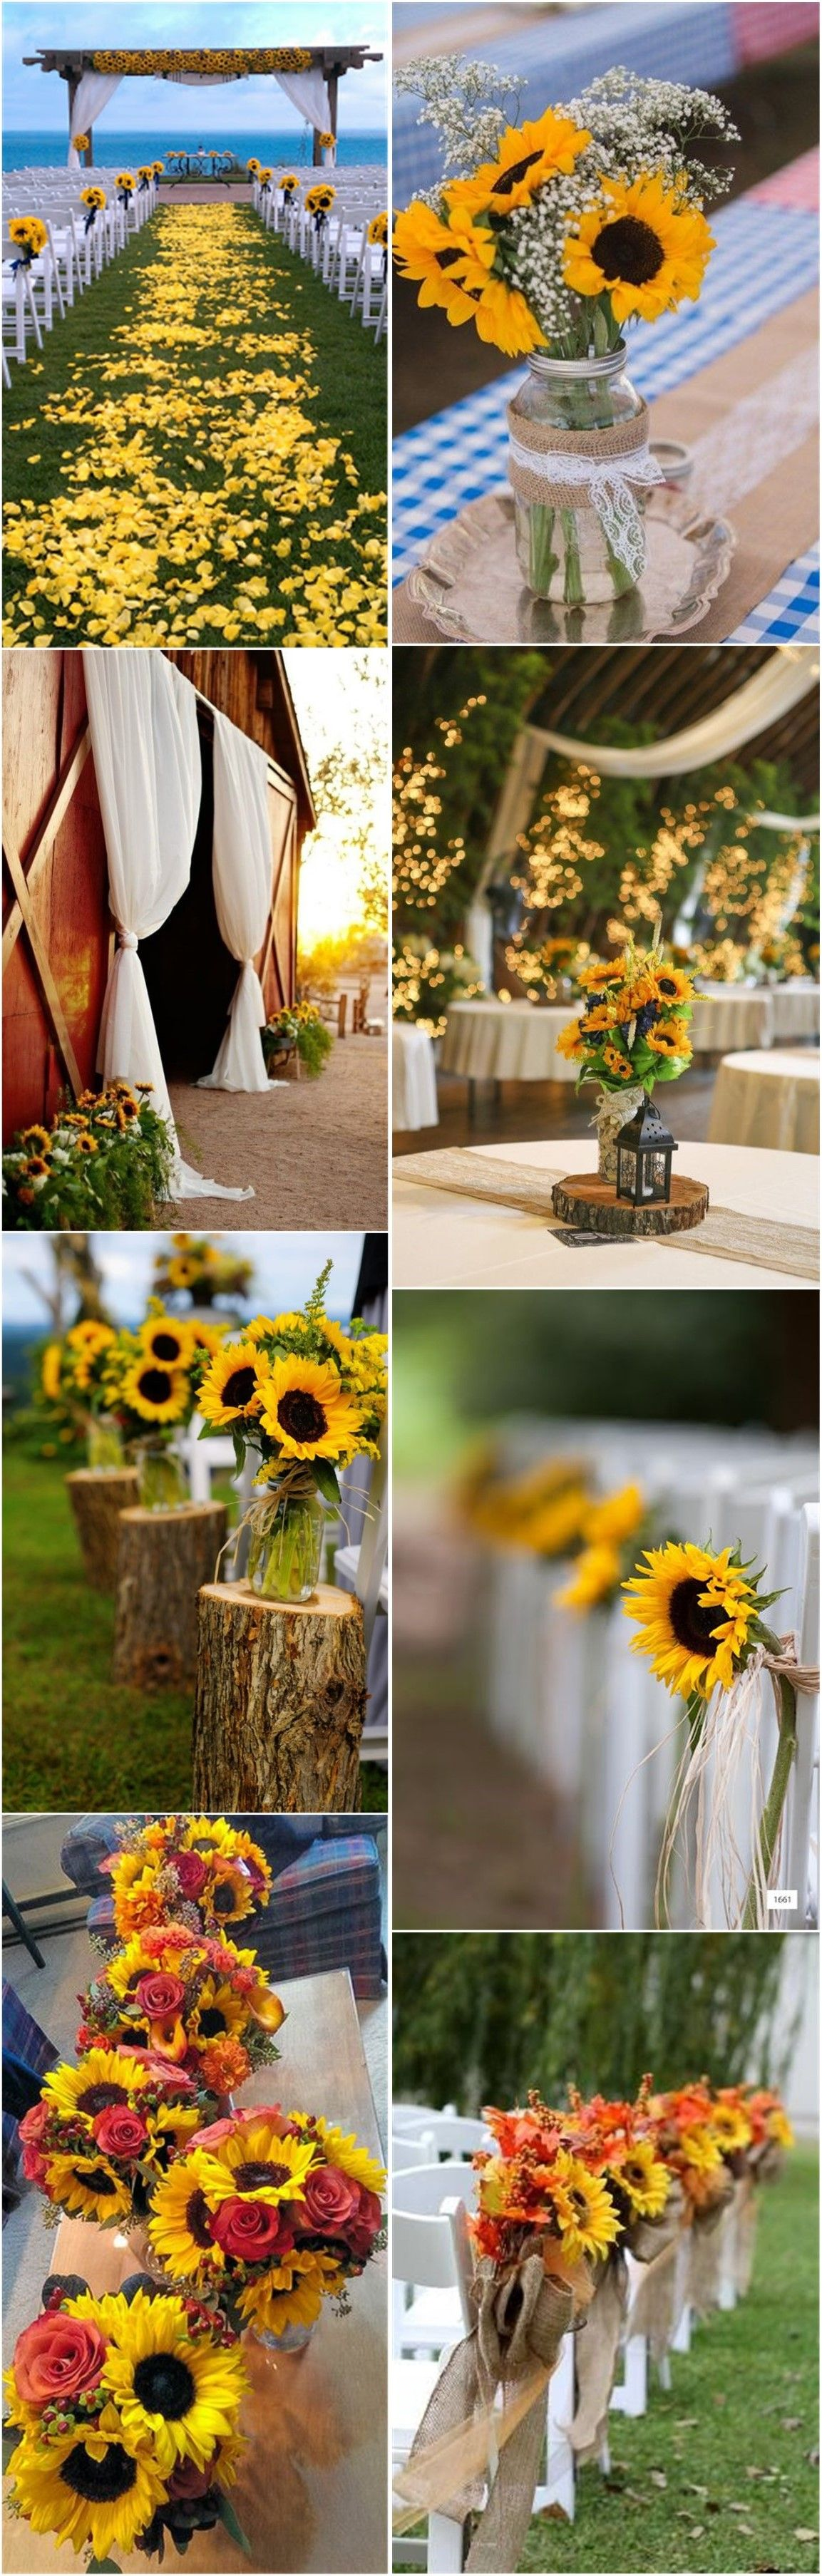 23 bright sunflower wedding decoration ideas for your rustic wedding 23 bright sunflower wedding decoration ideas for your rustic wedding junglespirit Images